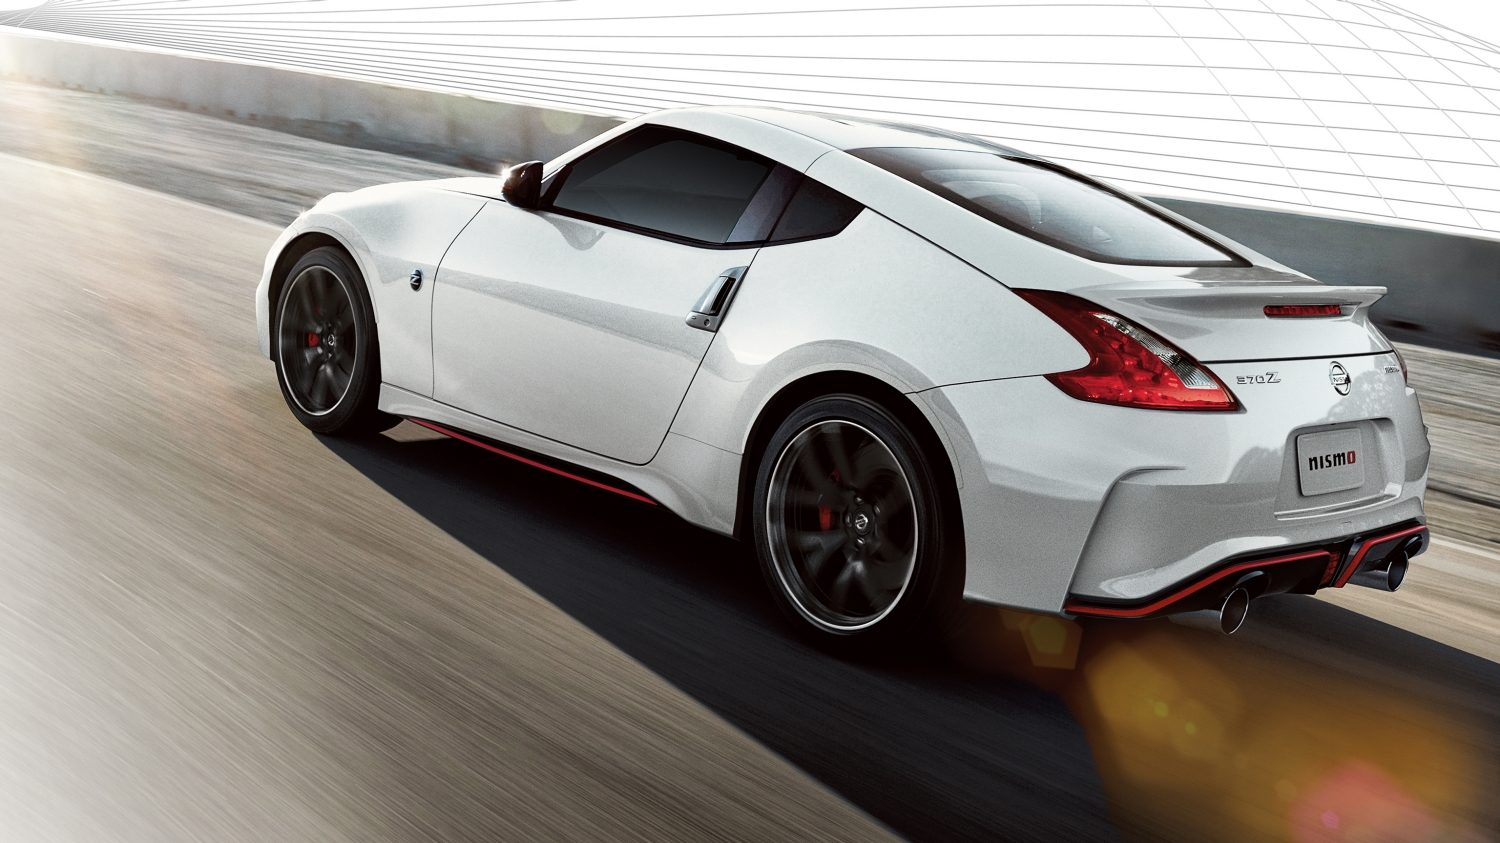 NISMO | Nissan 370Z | The Nissan 370Z on the road